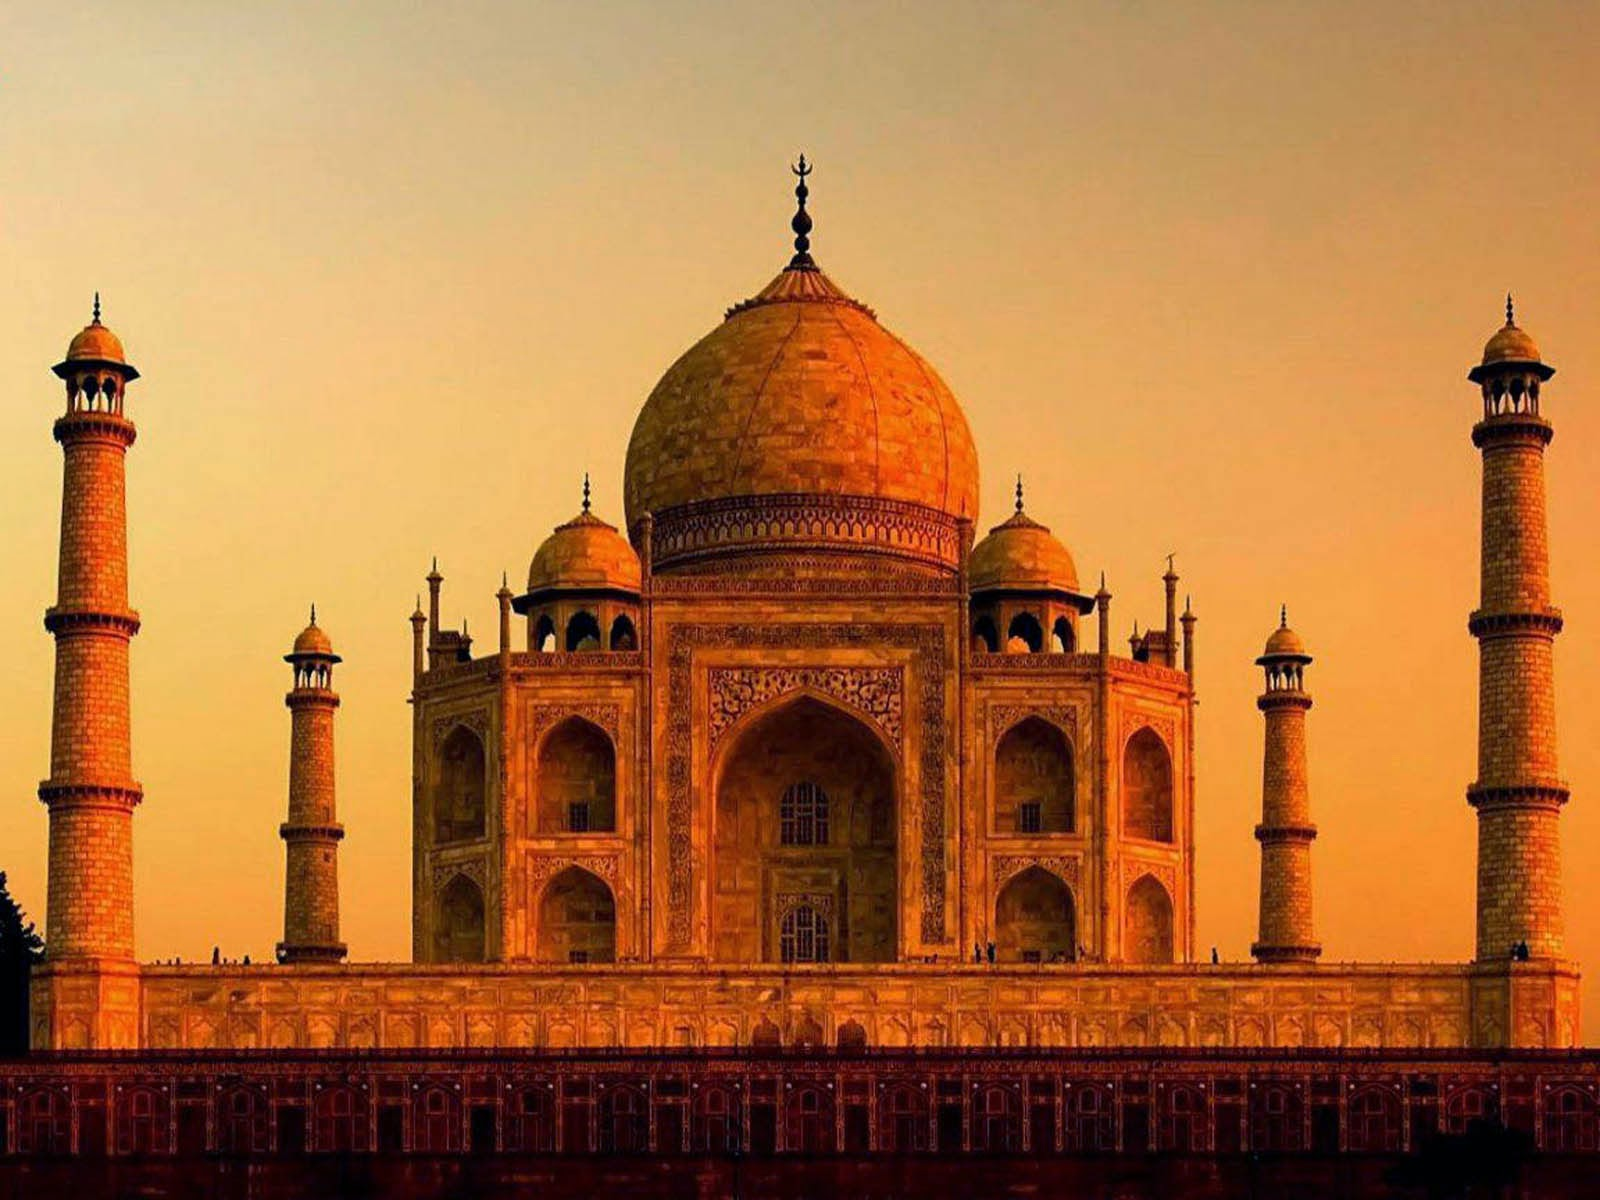 Tajmahal pictures at evening in Agra